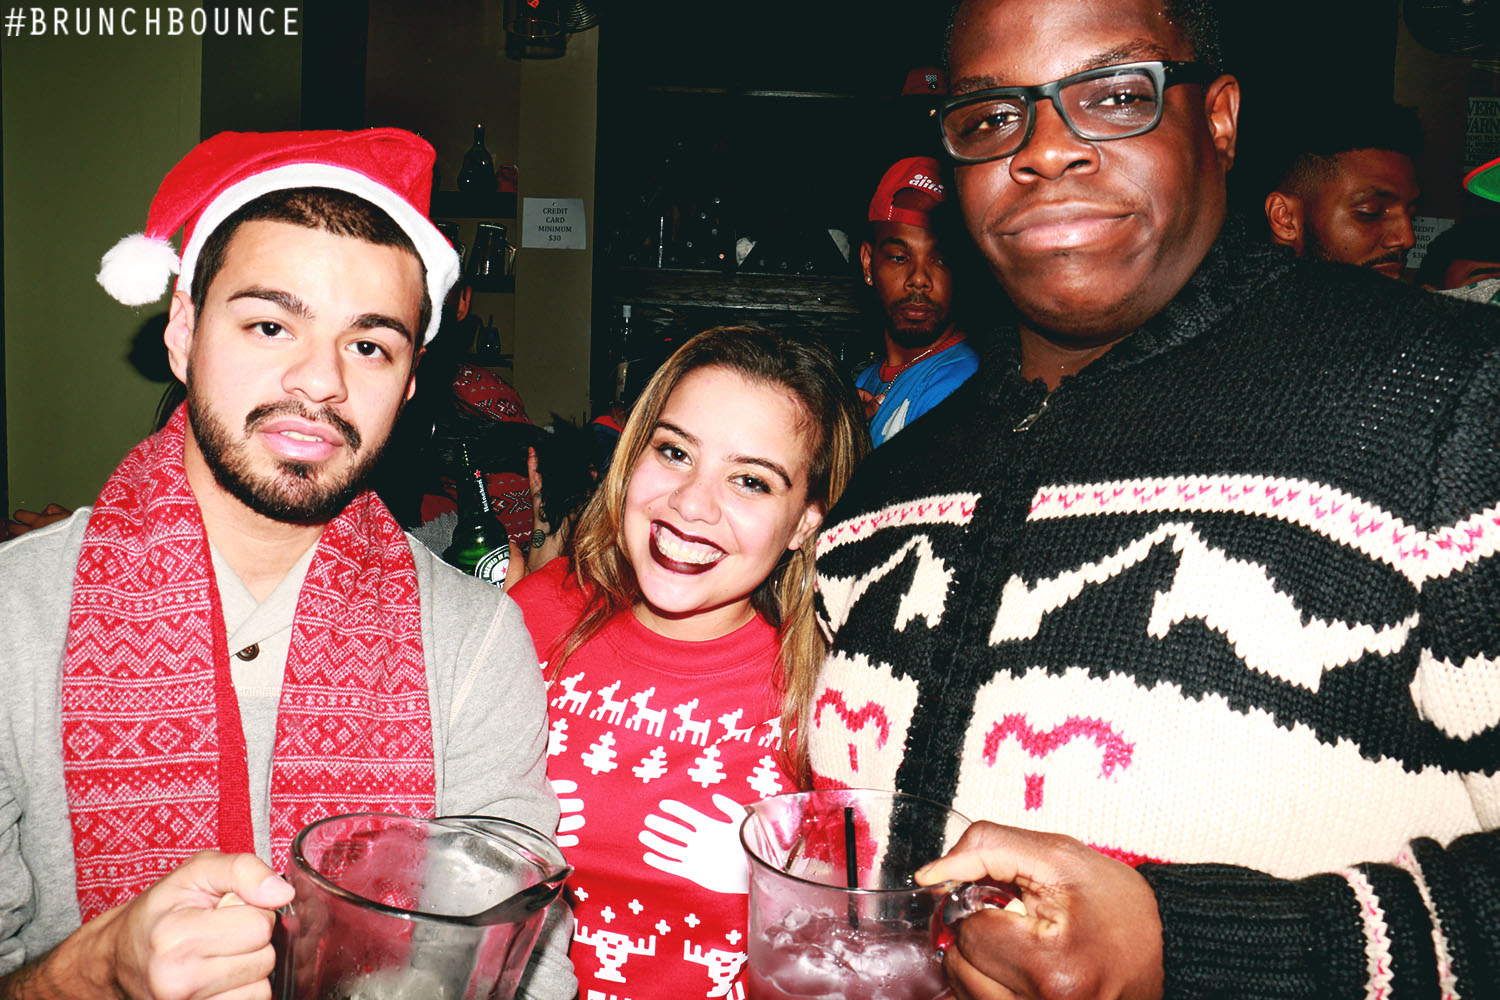 brunchbounce-ugly-christmas-sweater-party-122014_15896638429_o.jpg